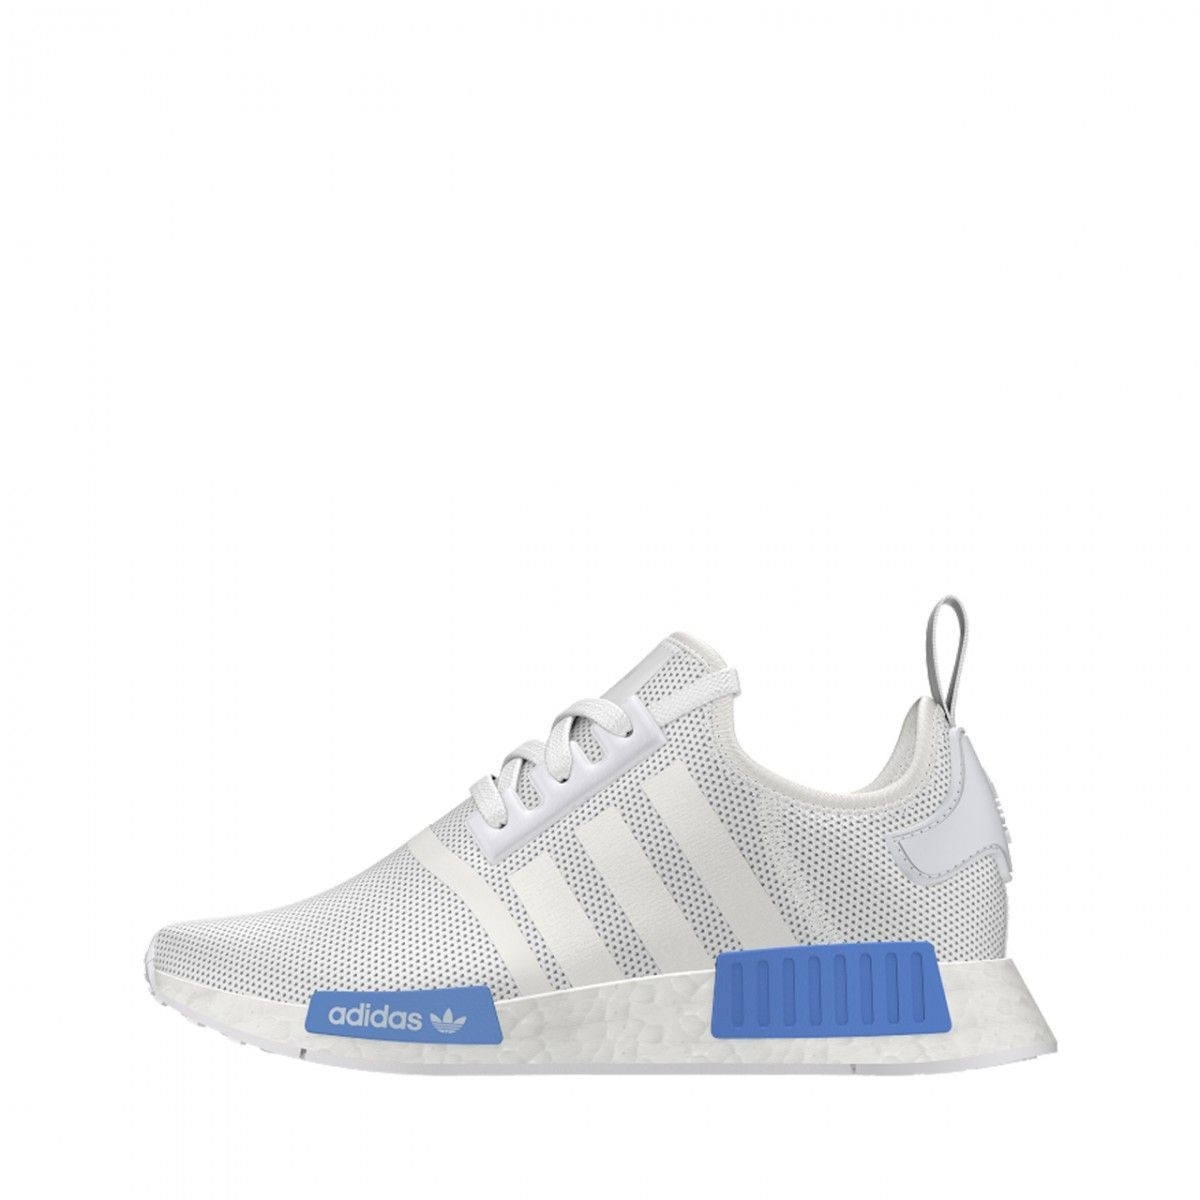 online here finest selection online shop Baskets Nmd R1 - Taille : 39 1/3;40;36;36 2/3;37 1/3;38;38 2 ...